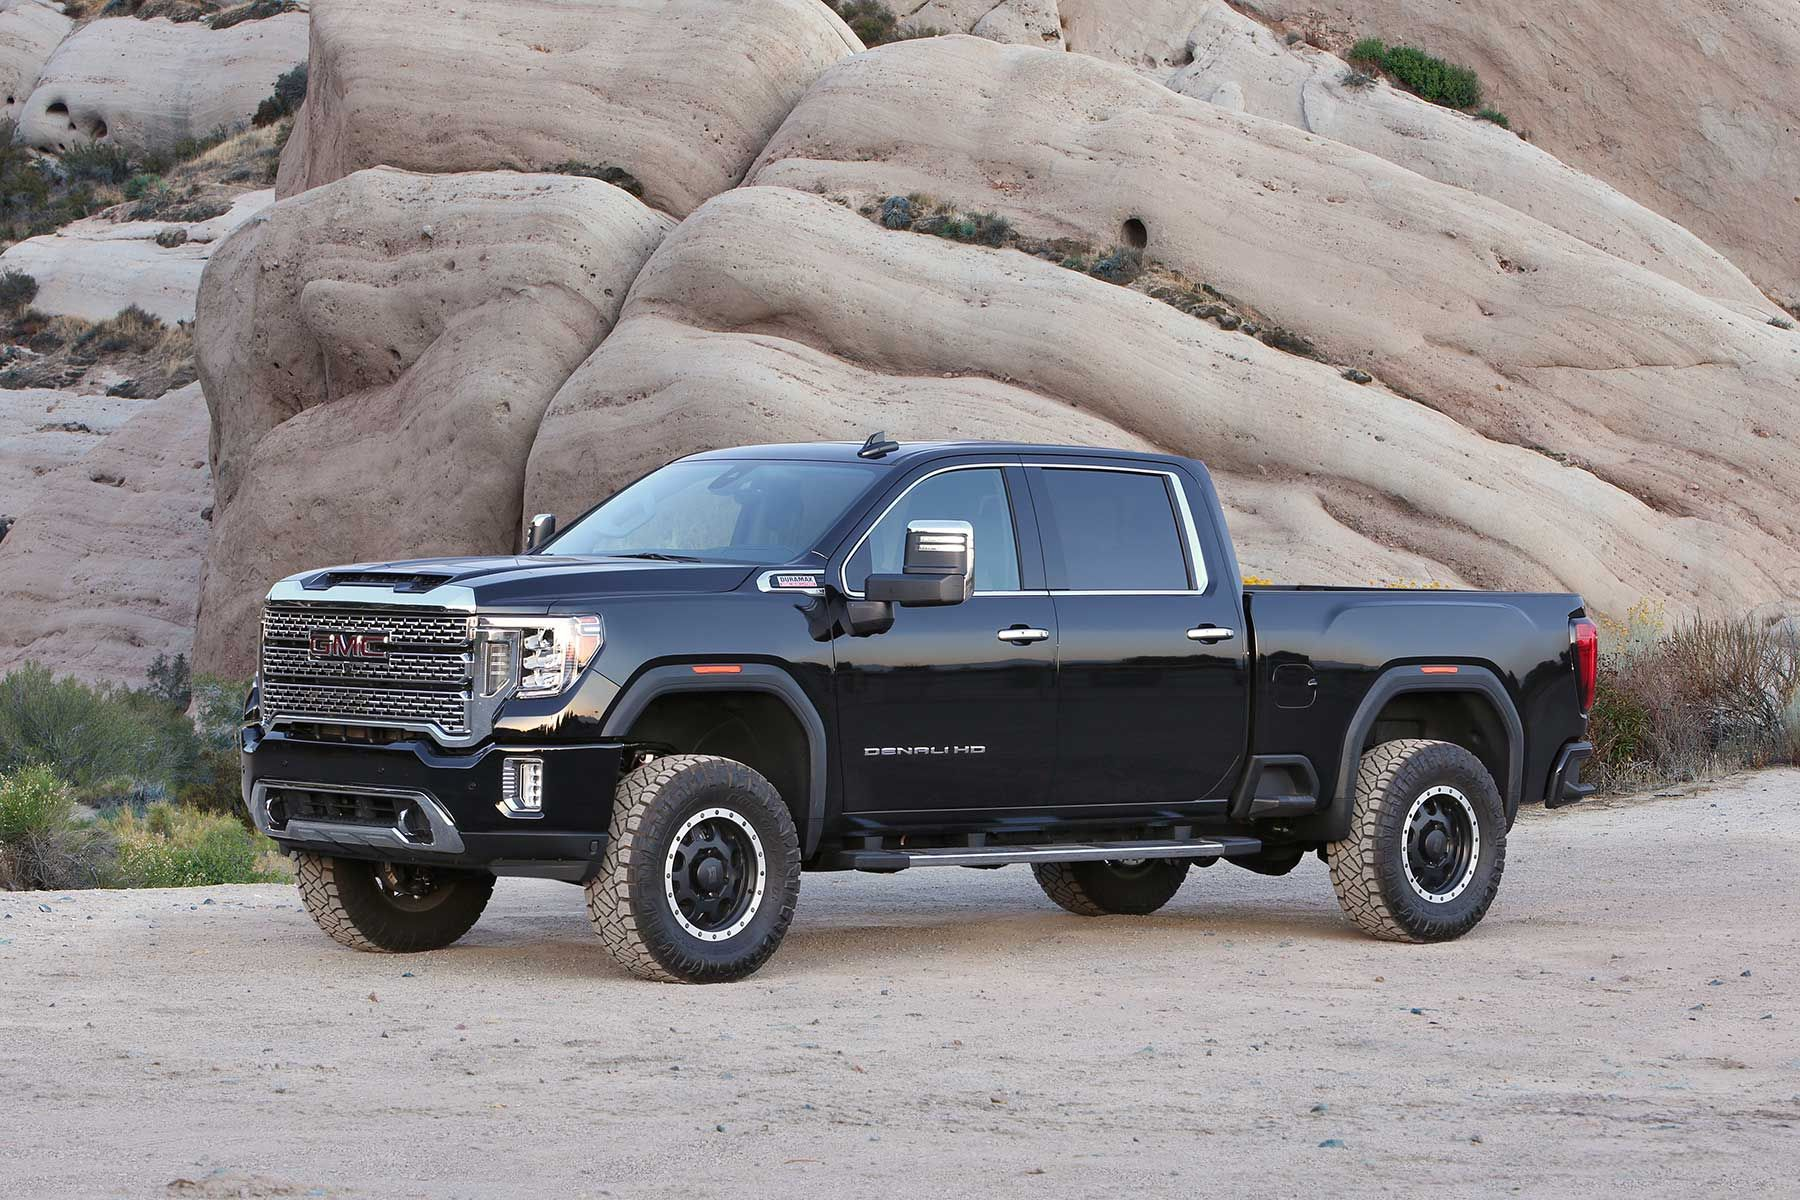 2020 Gmc Denali Hd Equipped With A Fabtech Leveling Kit In 2020